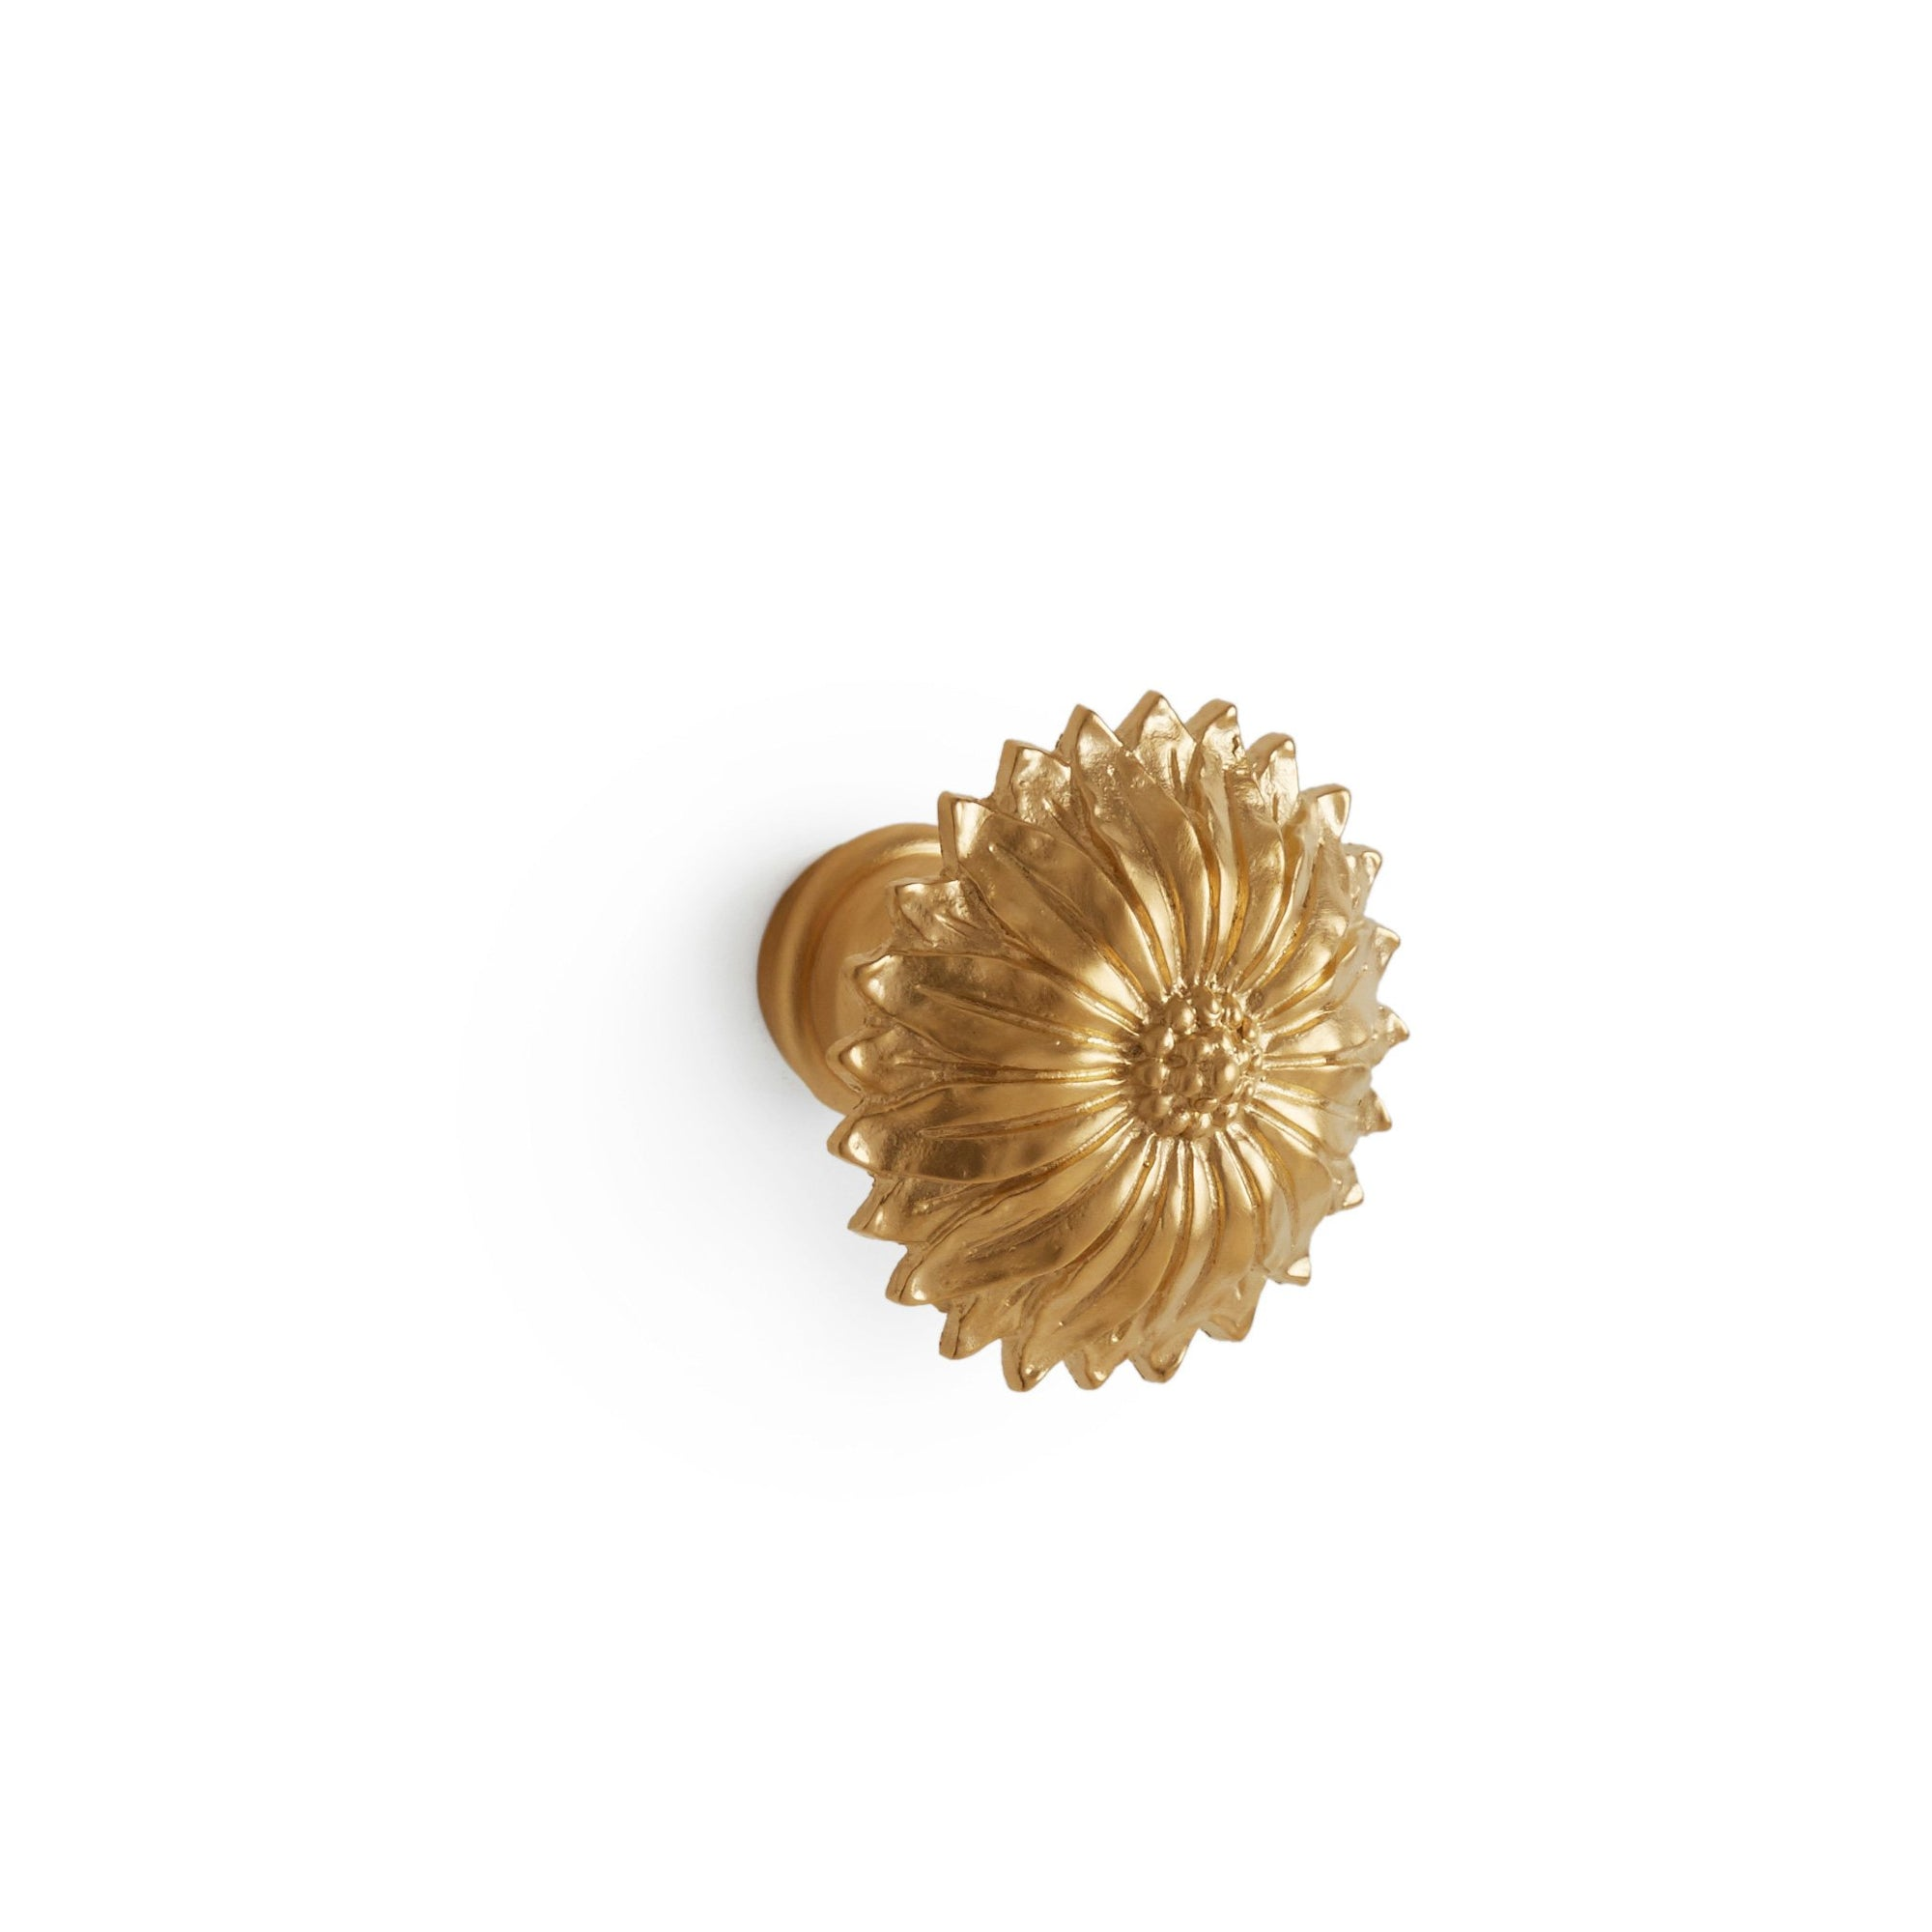 0068-GP Sherle Wagner International Acanthus Rosette Cabinet & Drawer Knob in Gold Plate metal finish